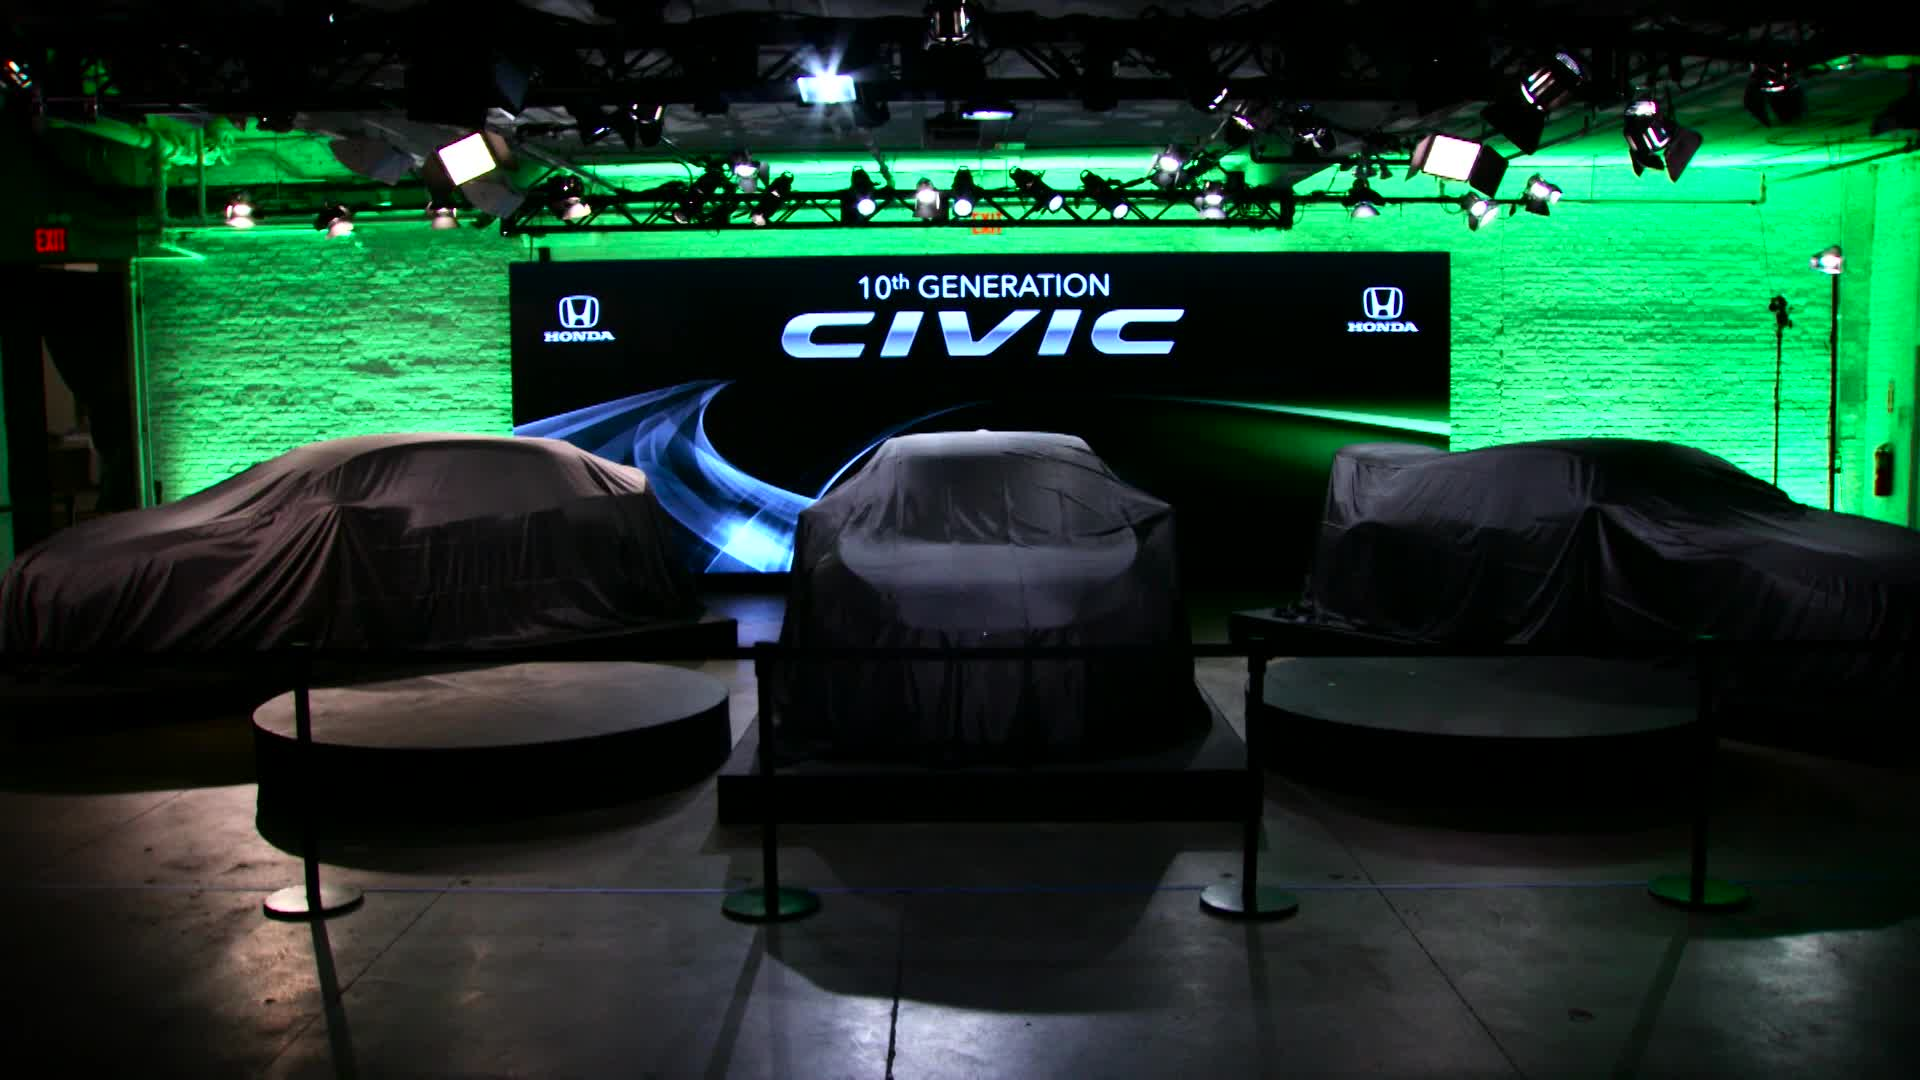 Honda New York Civic reveals recap video